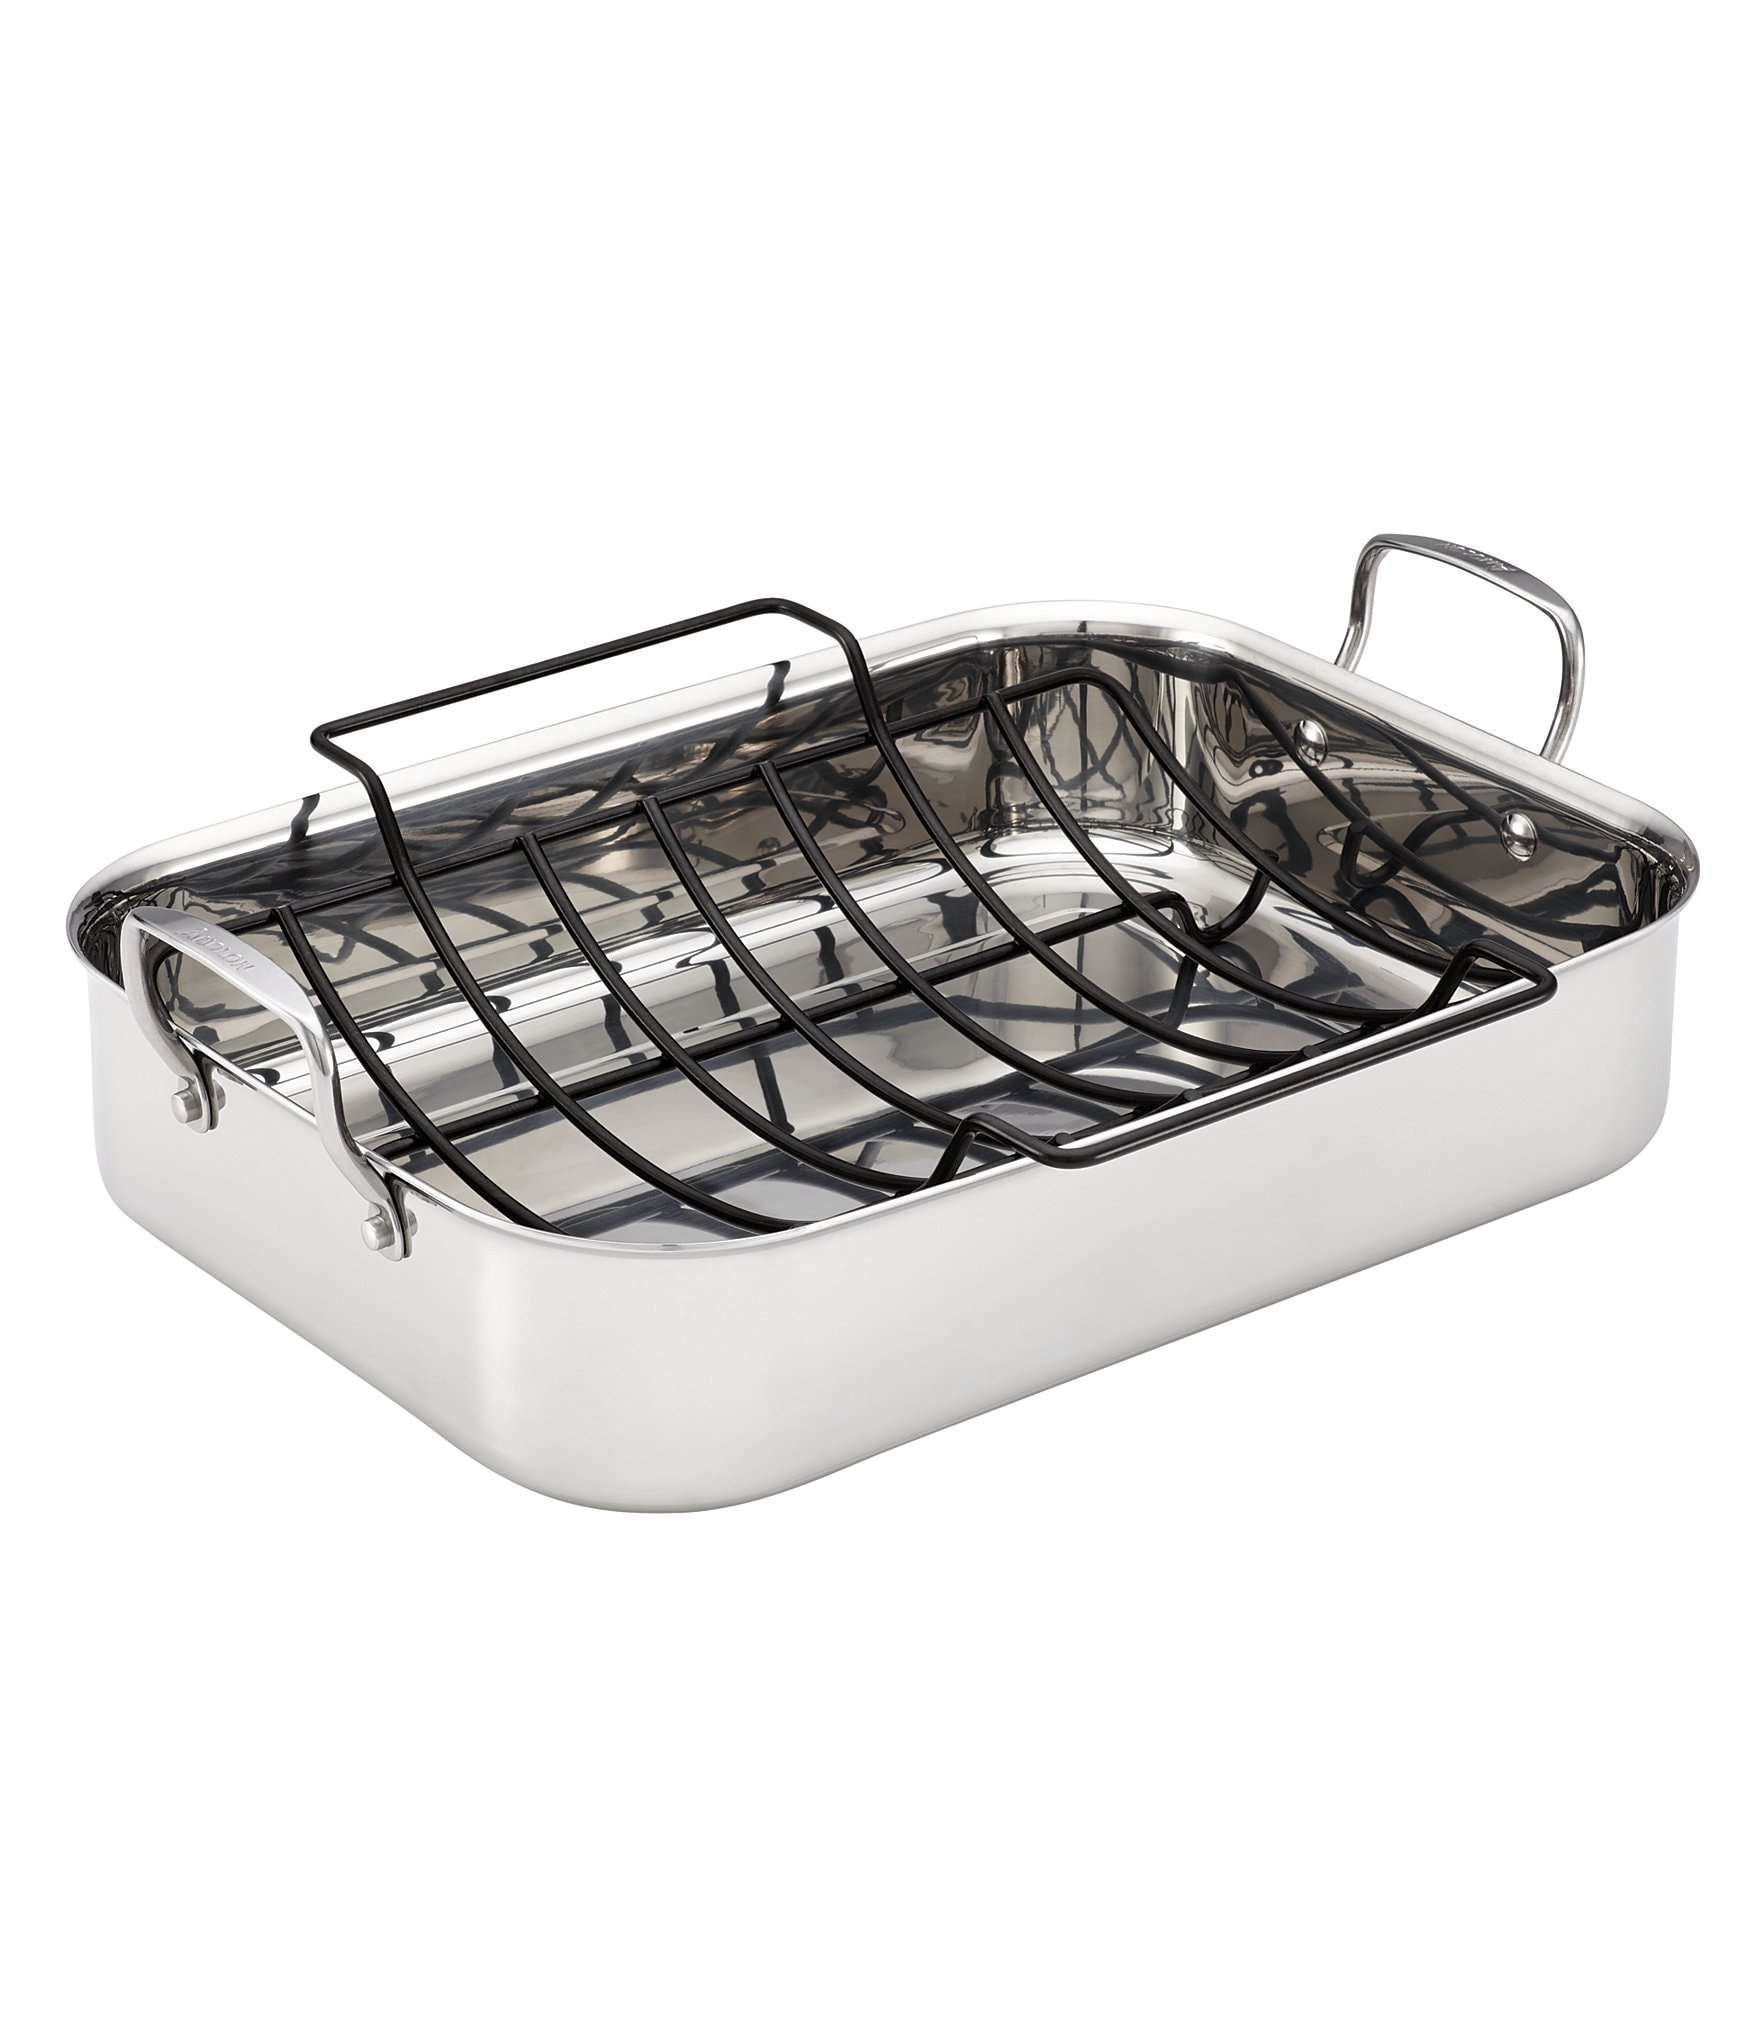 sauce calphalon cooking roasting everyday reliable lid cookware us silo versatile pan qt front rack angled with contemporary for cover ca en stainless